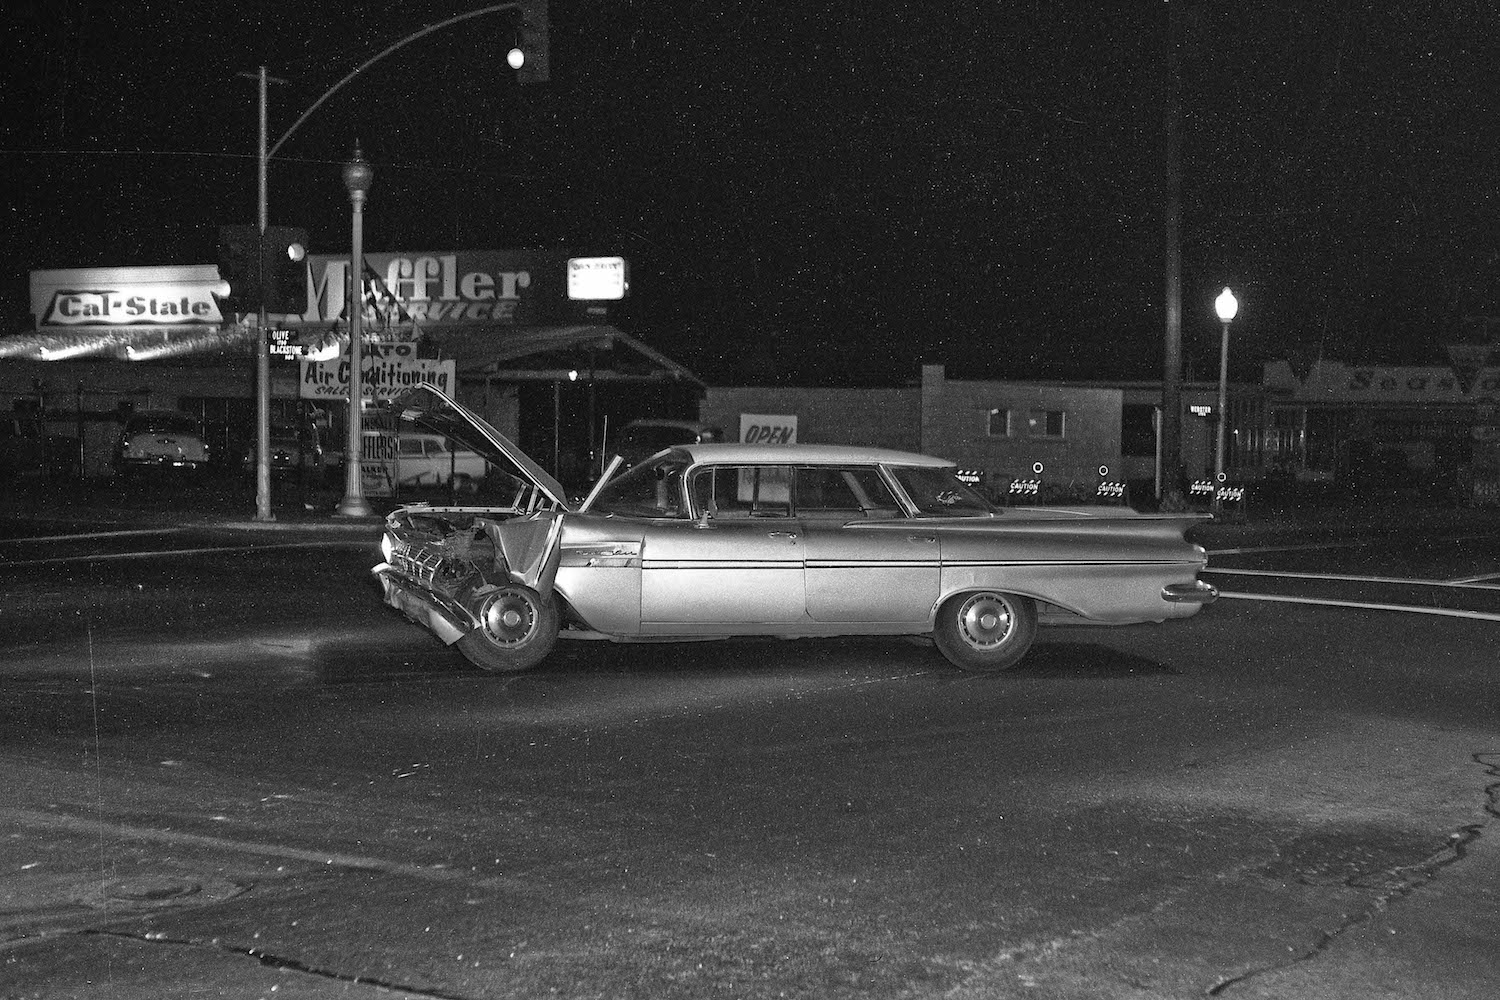 Ford Of Ventura >> Old Auto Accidents in Fresno (1960 - 1966) - Flashbak